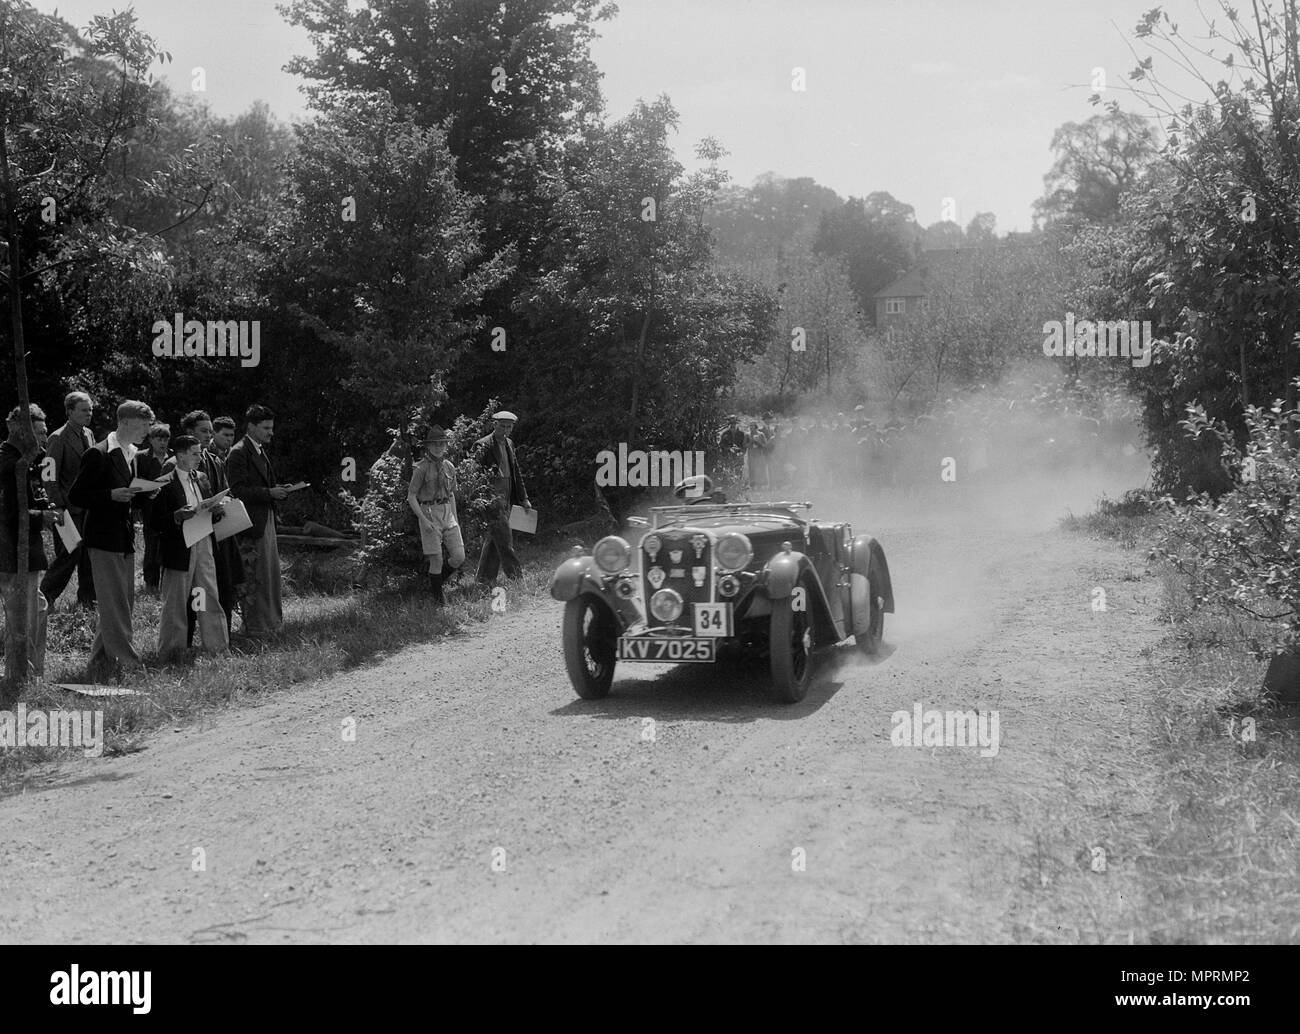 Singer Le Mans competing in the BOC Hill Climb, Chalfont St Peter, Buckinghamshire, 1932. Artist: Bill Brunell. - Stock Image